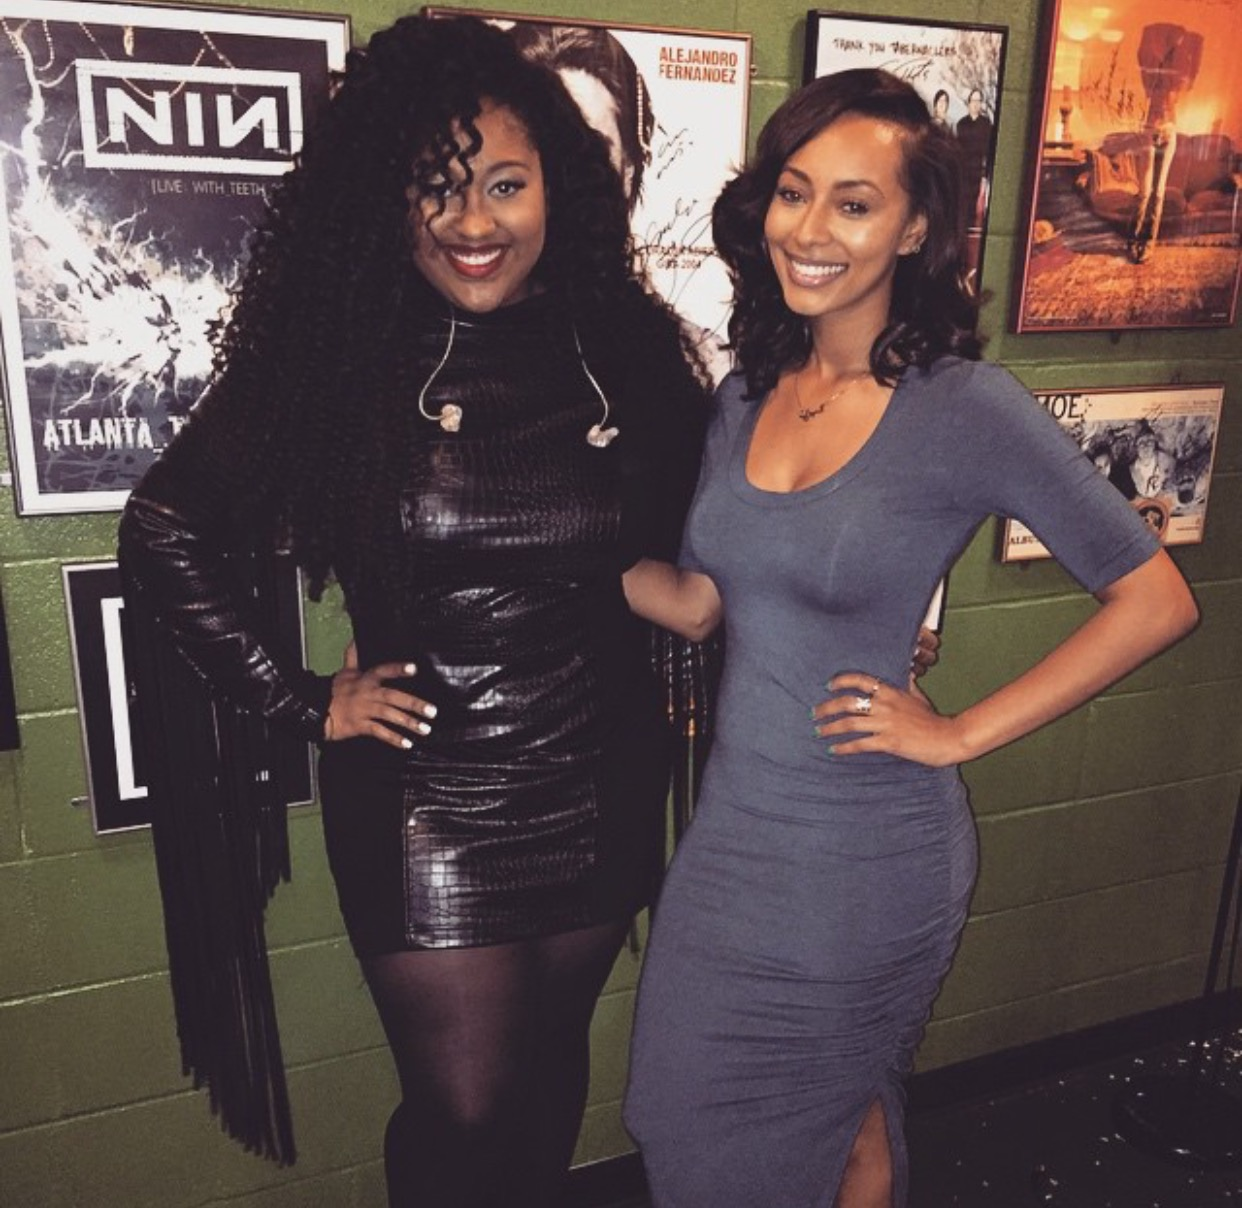 """Jazmine Sullivan Performs """"In Love With Another Man"""" Live On Tour In Atlanta"""